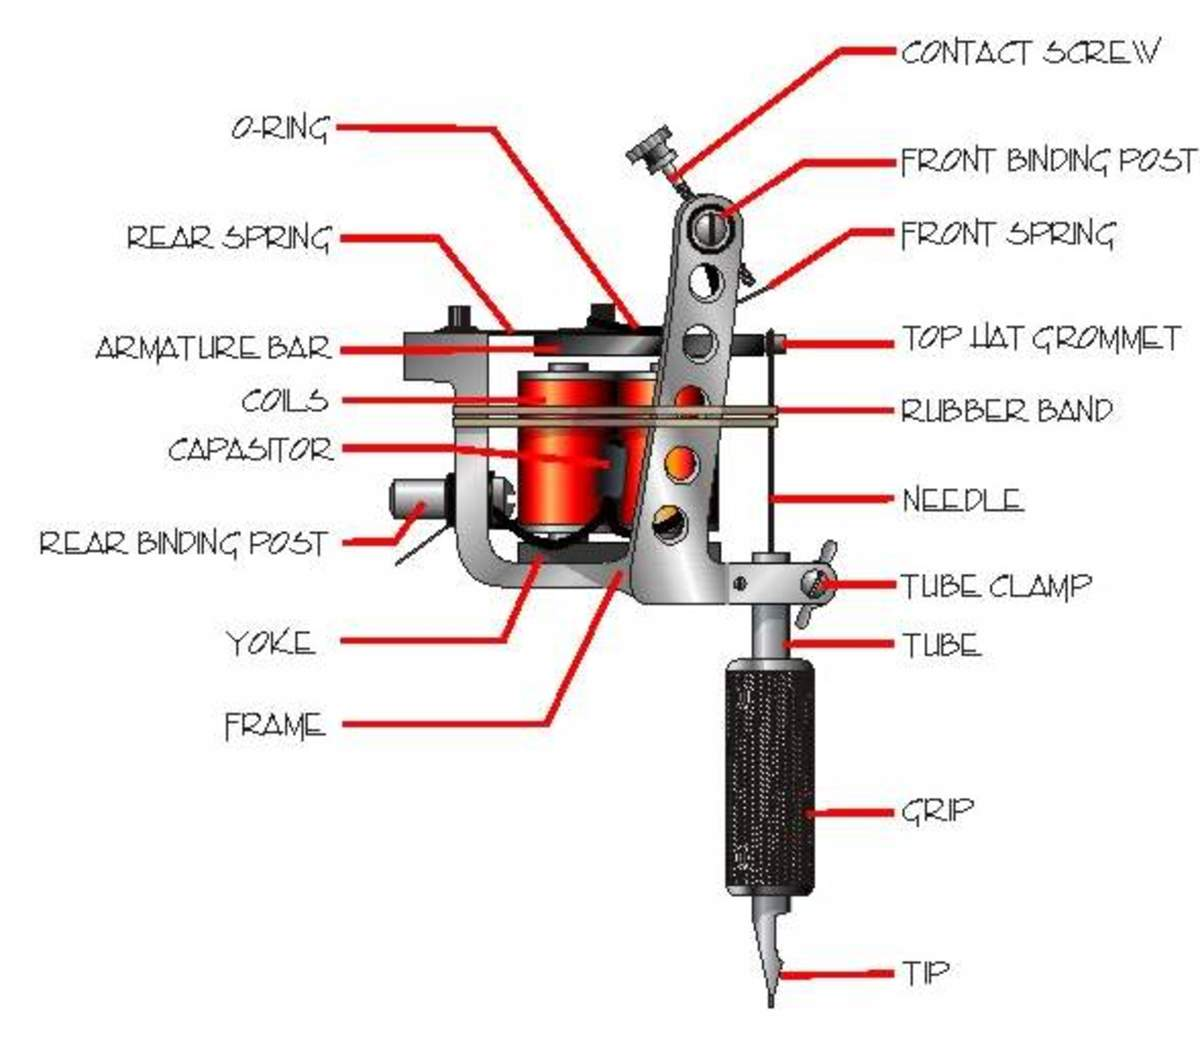 Apart from not being able to see the capacitator, this is a great diagram.